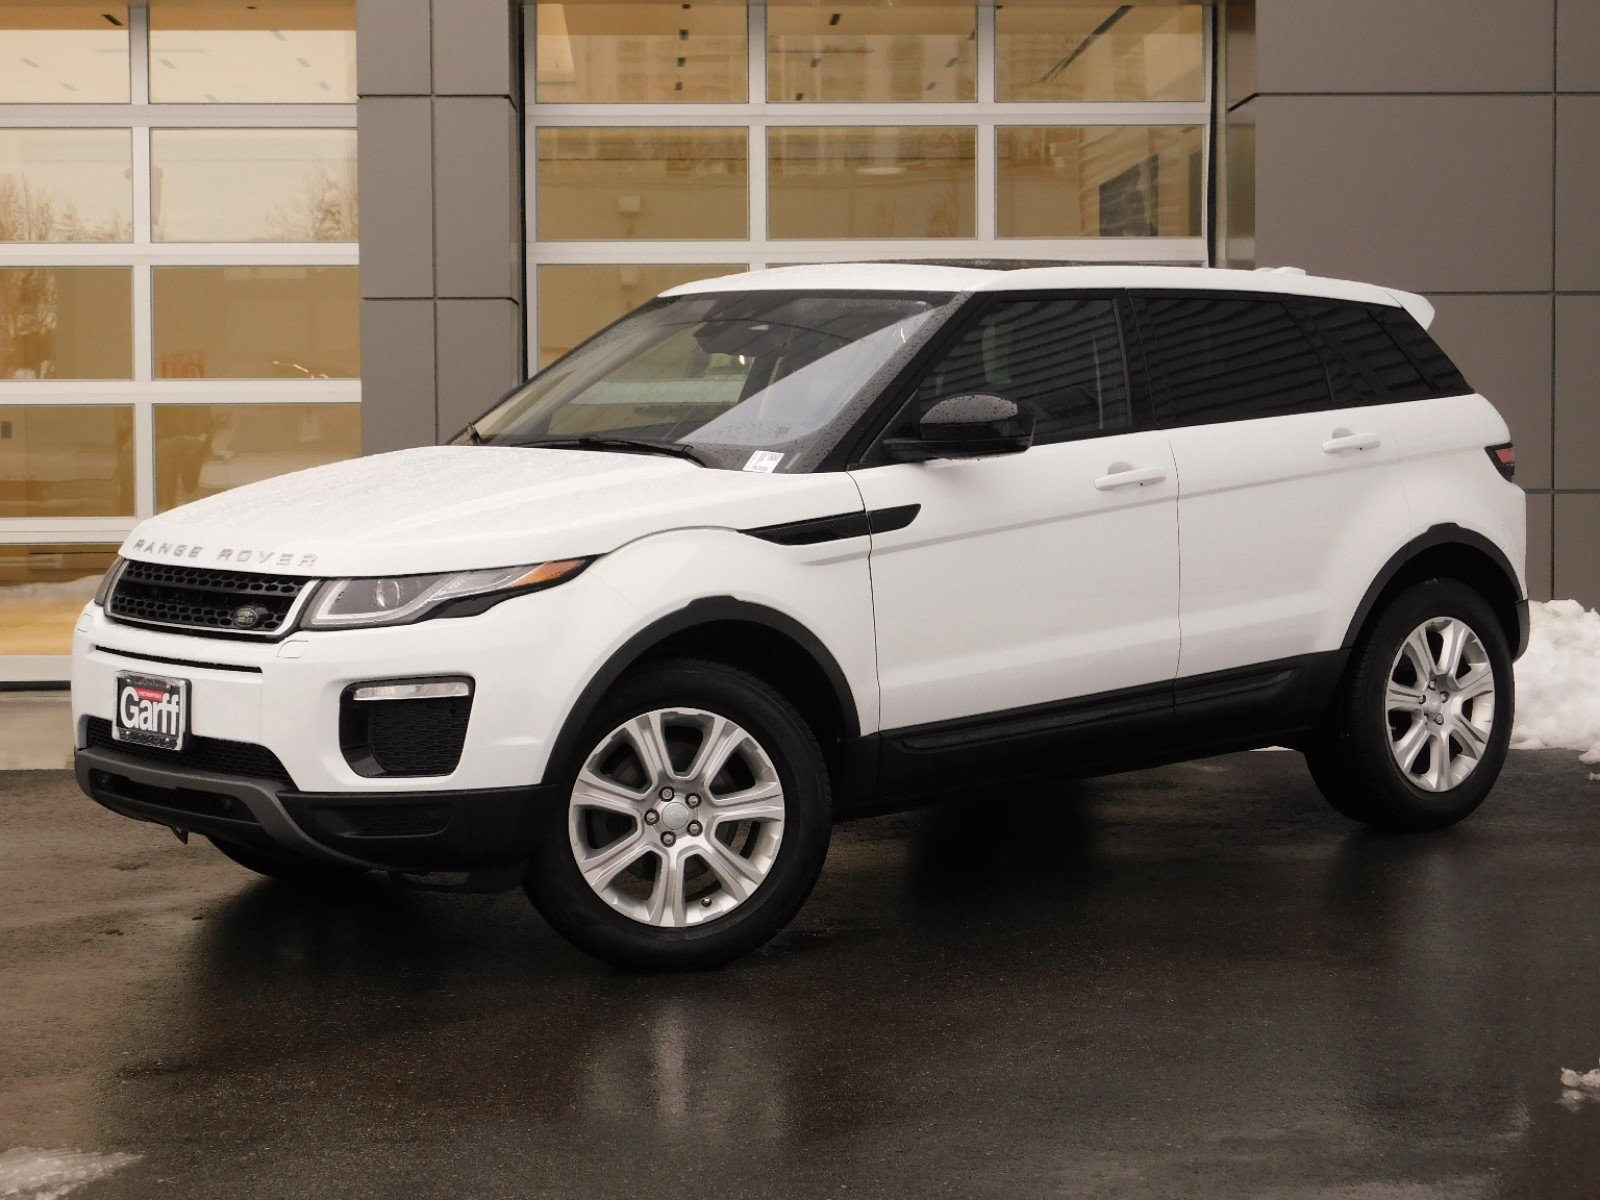 Pre-Owned 2017 Land Rover Range Rover Evoque WAGON 4 DOOR